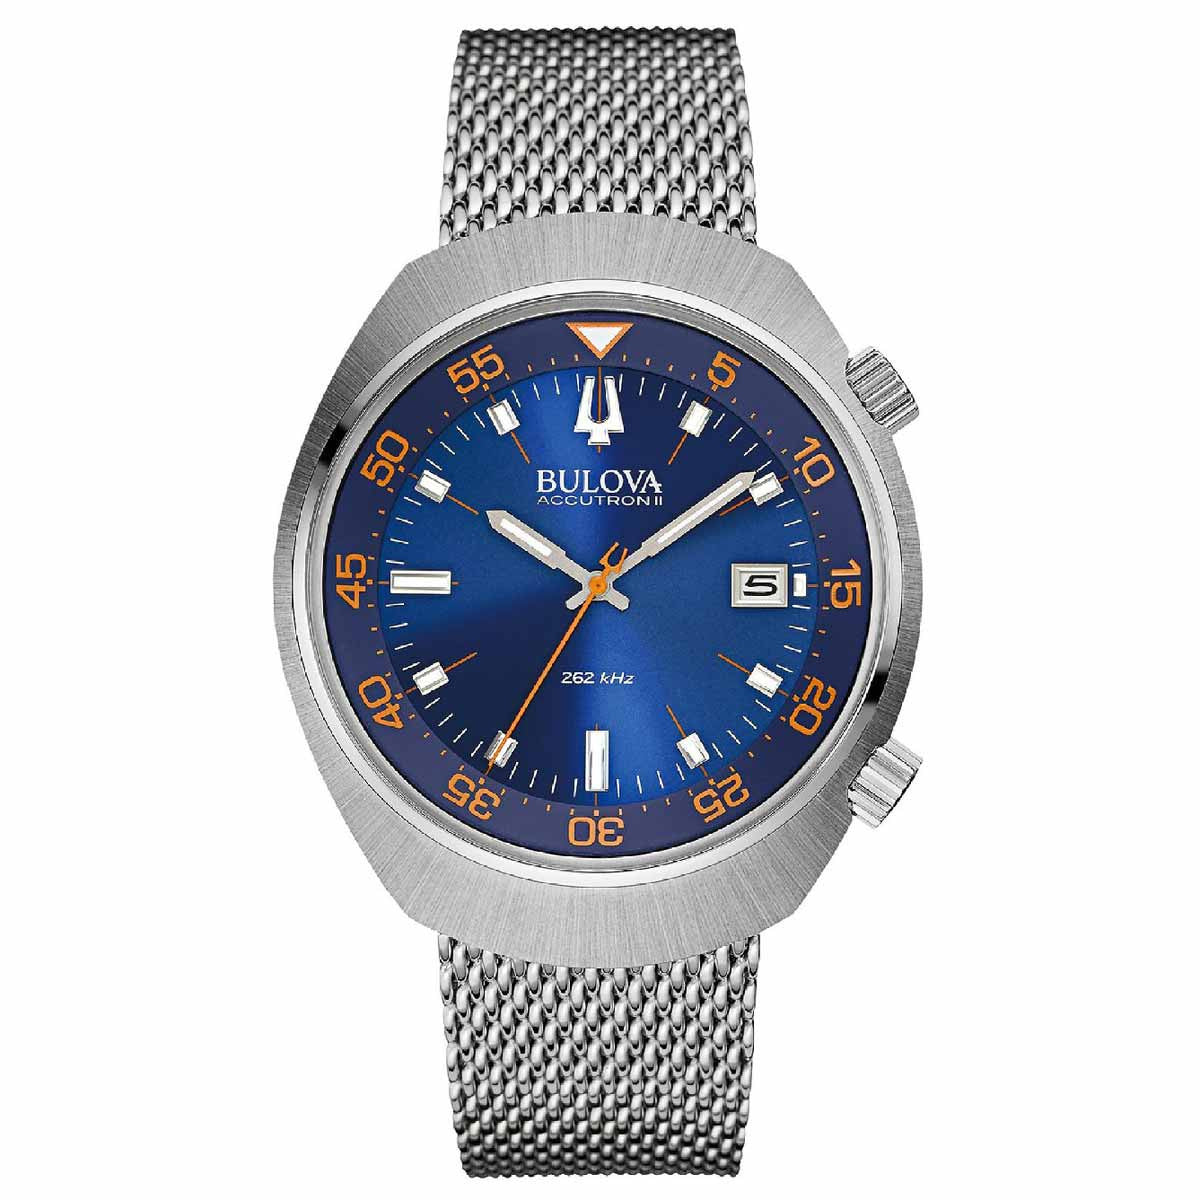 Bulova 96B232 Men's Accutron II Lobster Blue Dial Steel Mesh Bracelet Watch